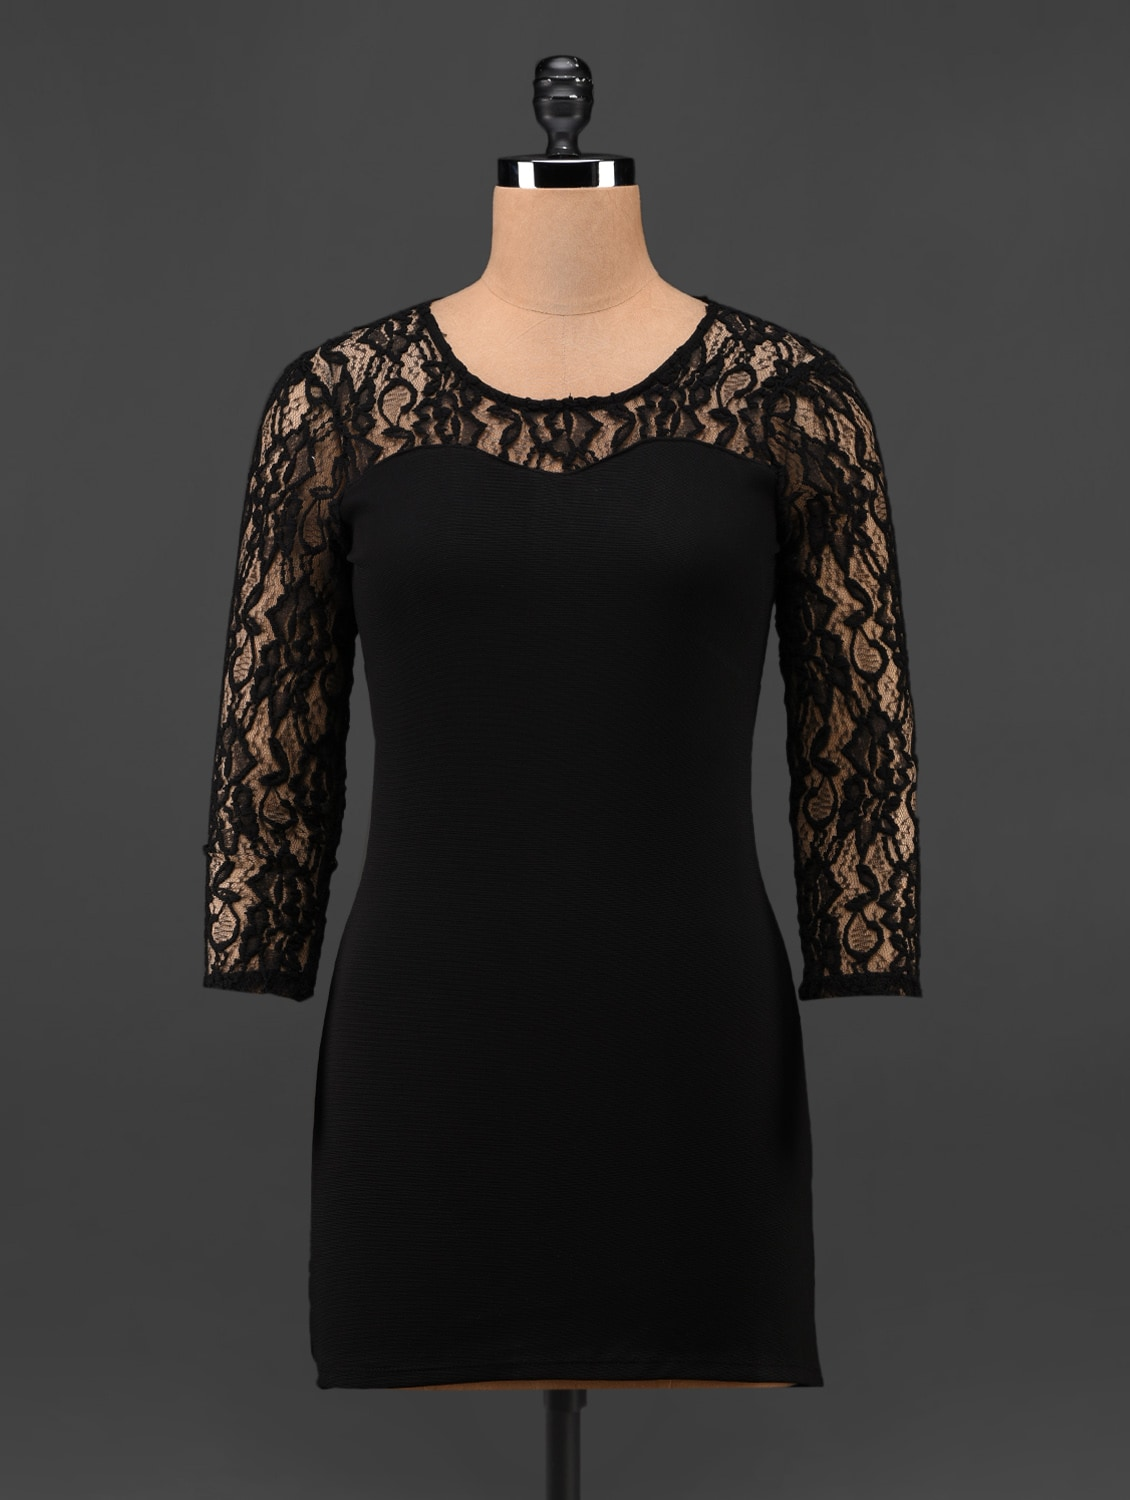 Sleeves & Neck Lace Polyester Dress - Feyona